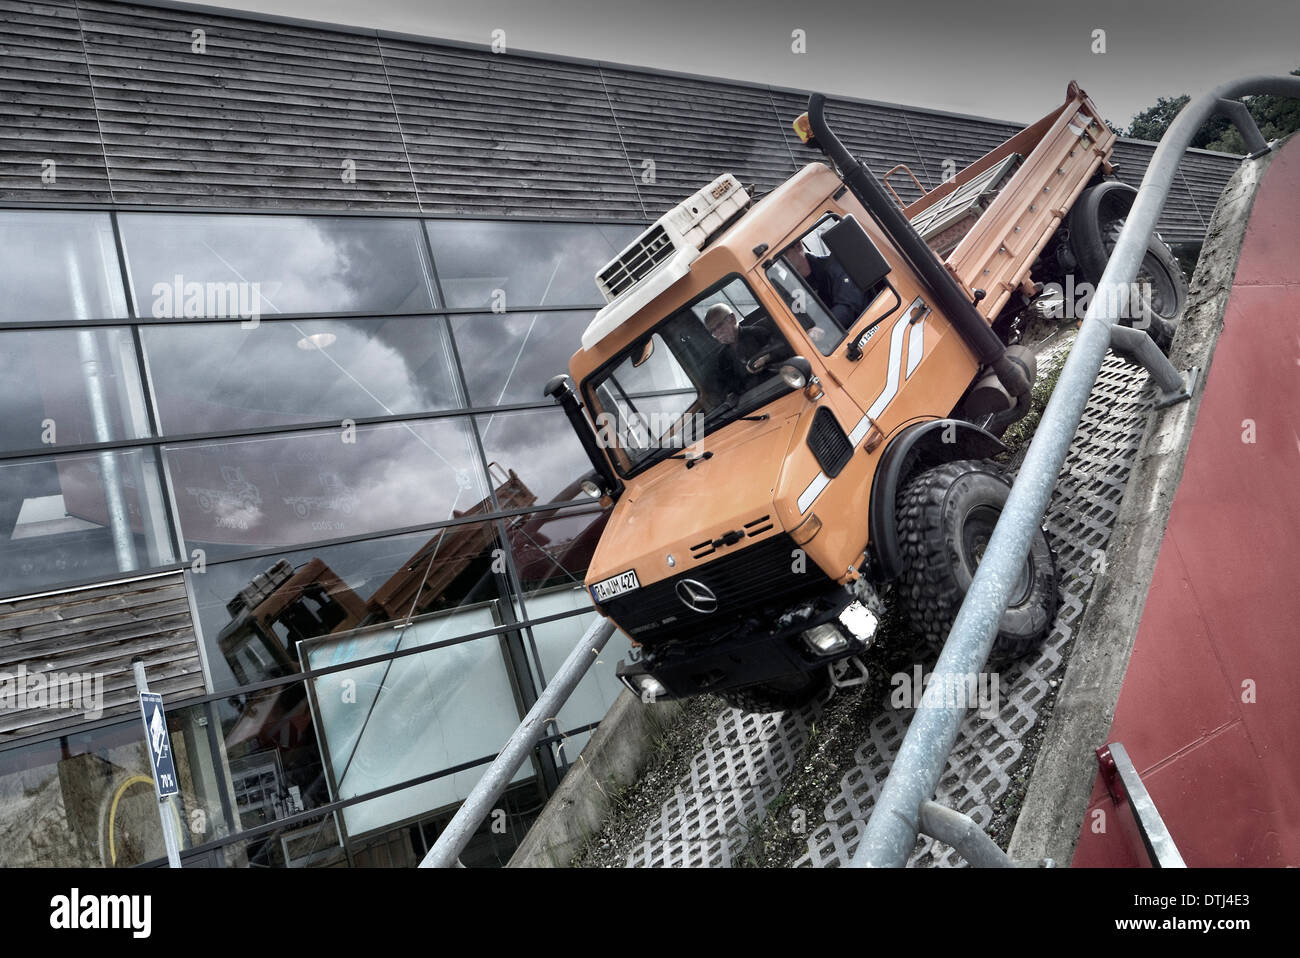 unimog museum stockfotos unimog museum bilder alamy. Black Bedroom Furniture Sets. Home Design Ideas